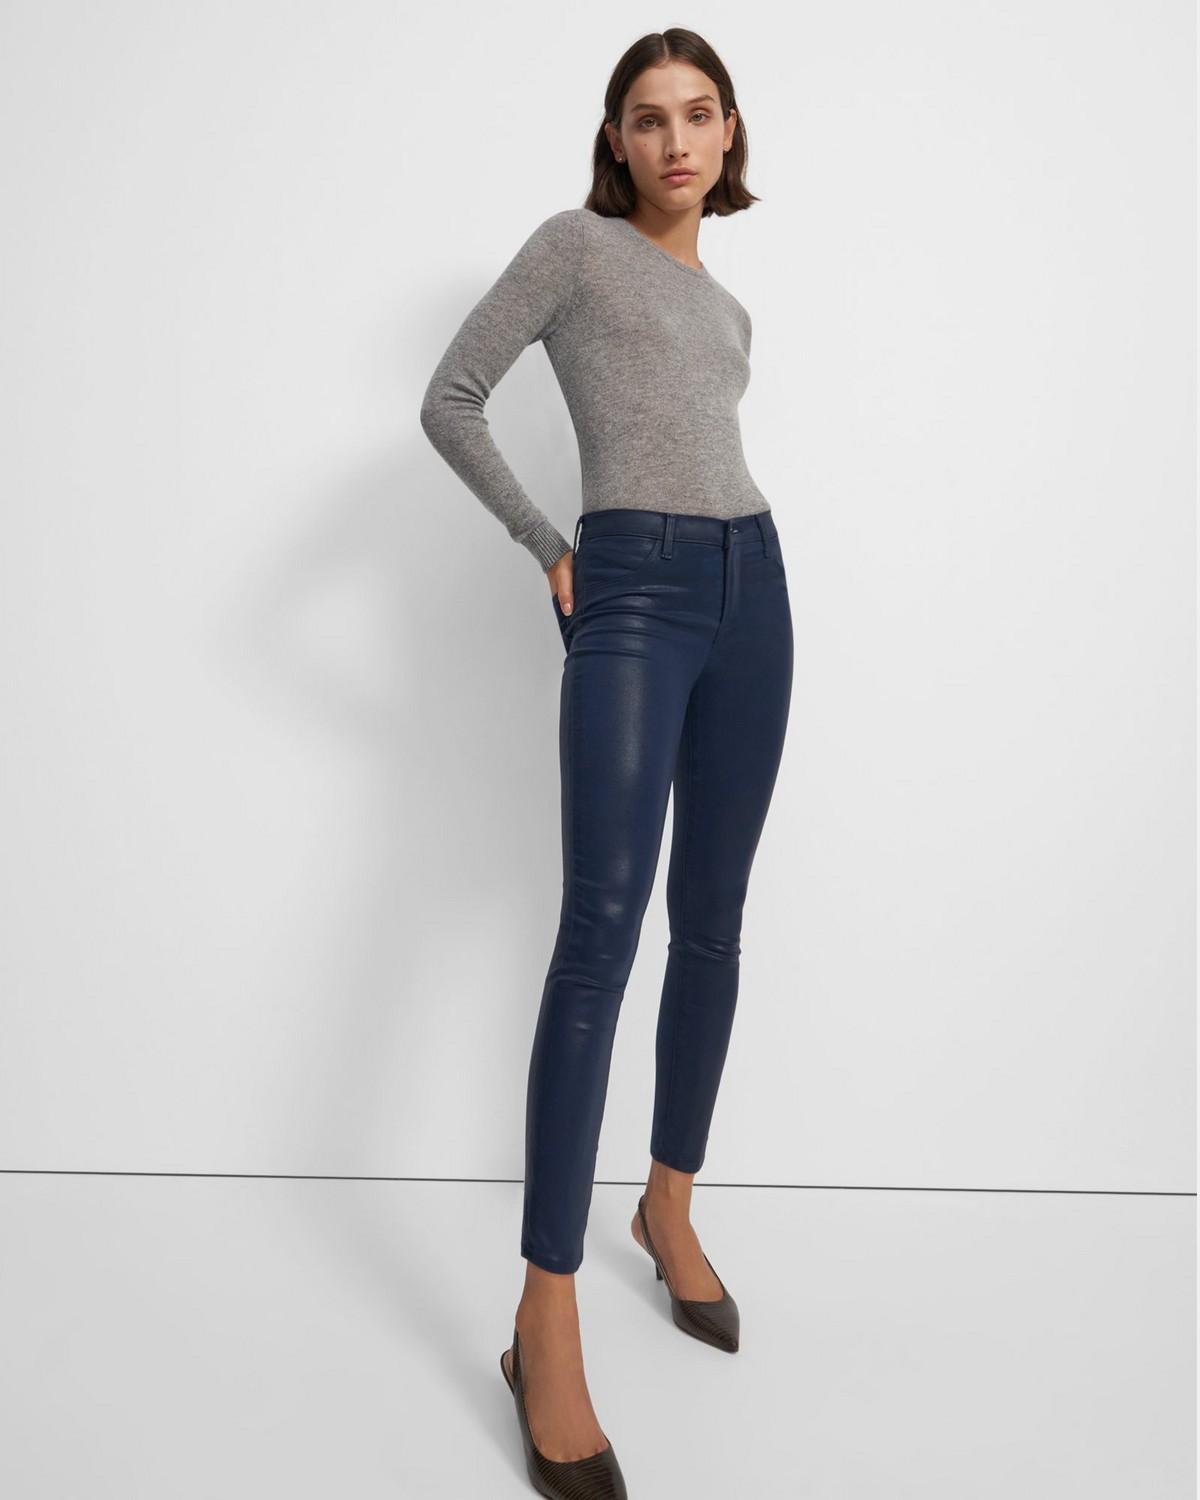 J Brand Alana High Rise Cropped Skinny Jean in Denim